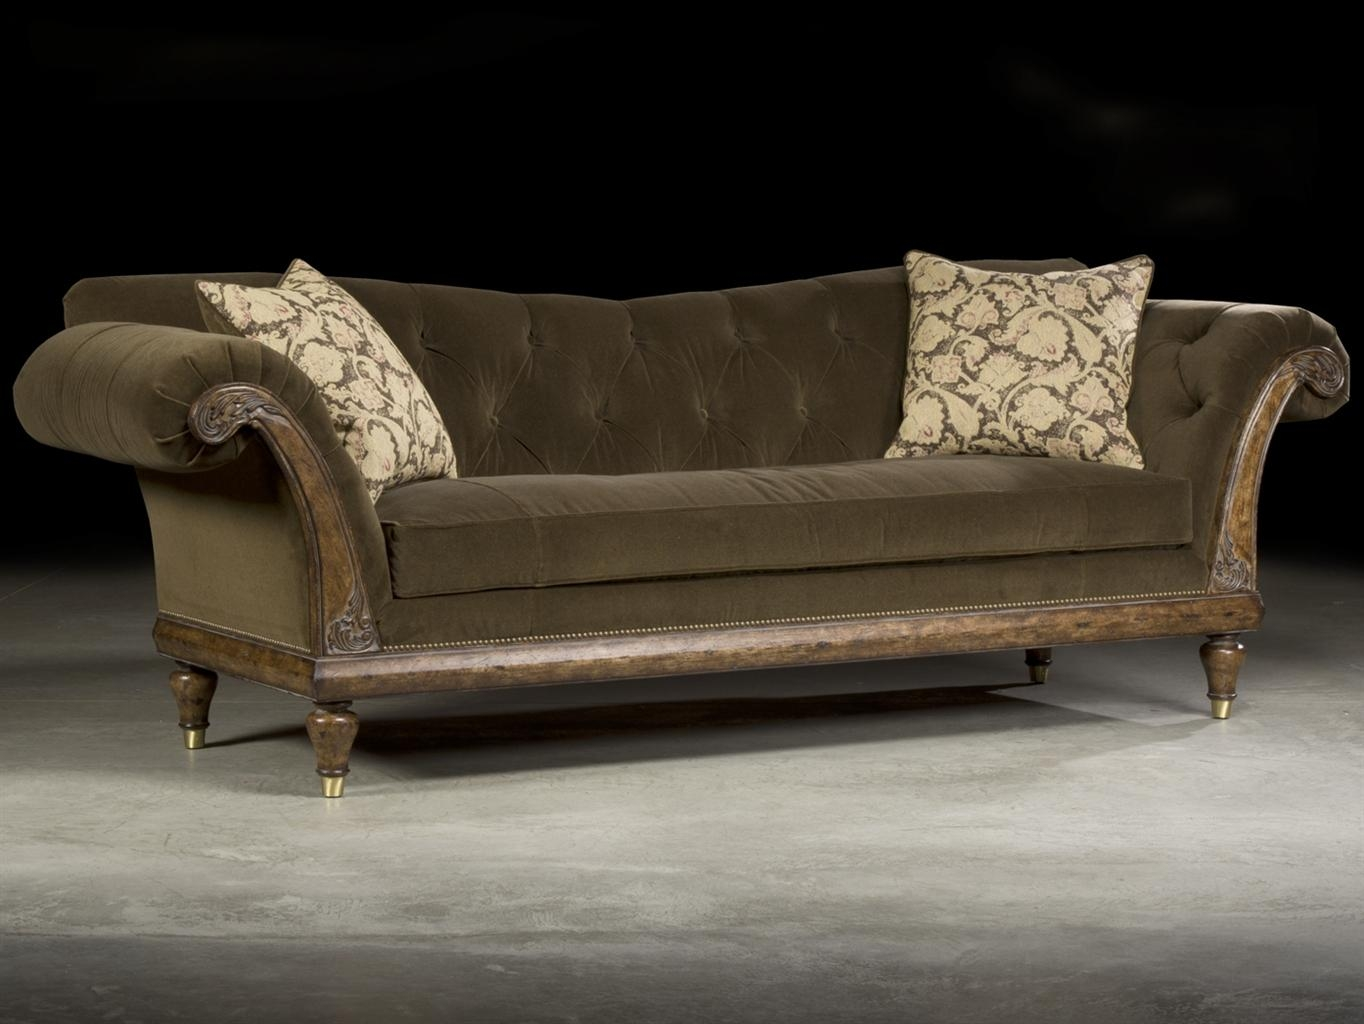 Sofas Center : Velvet Tufted Sofa Orange Ava Sleeper Specscream Intended For Brown Tufted Sofas (Image 17 of 20)